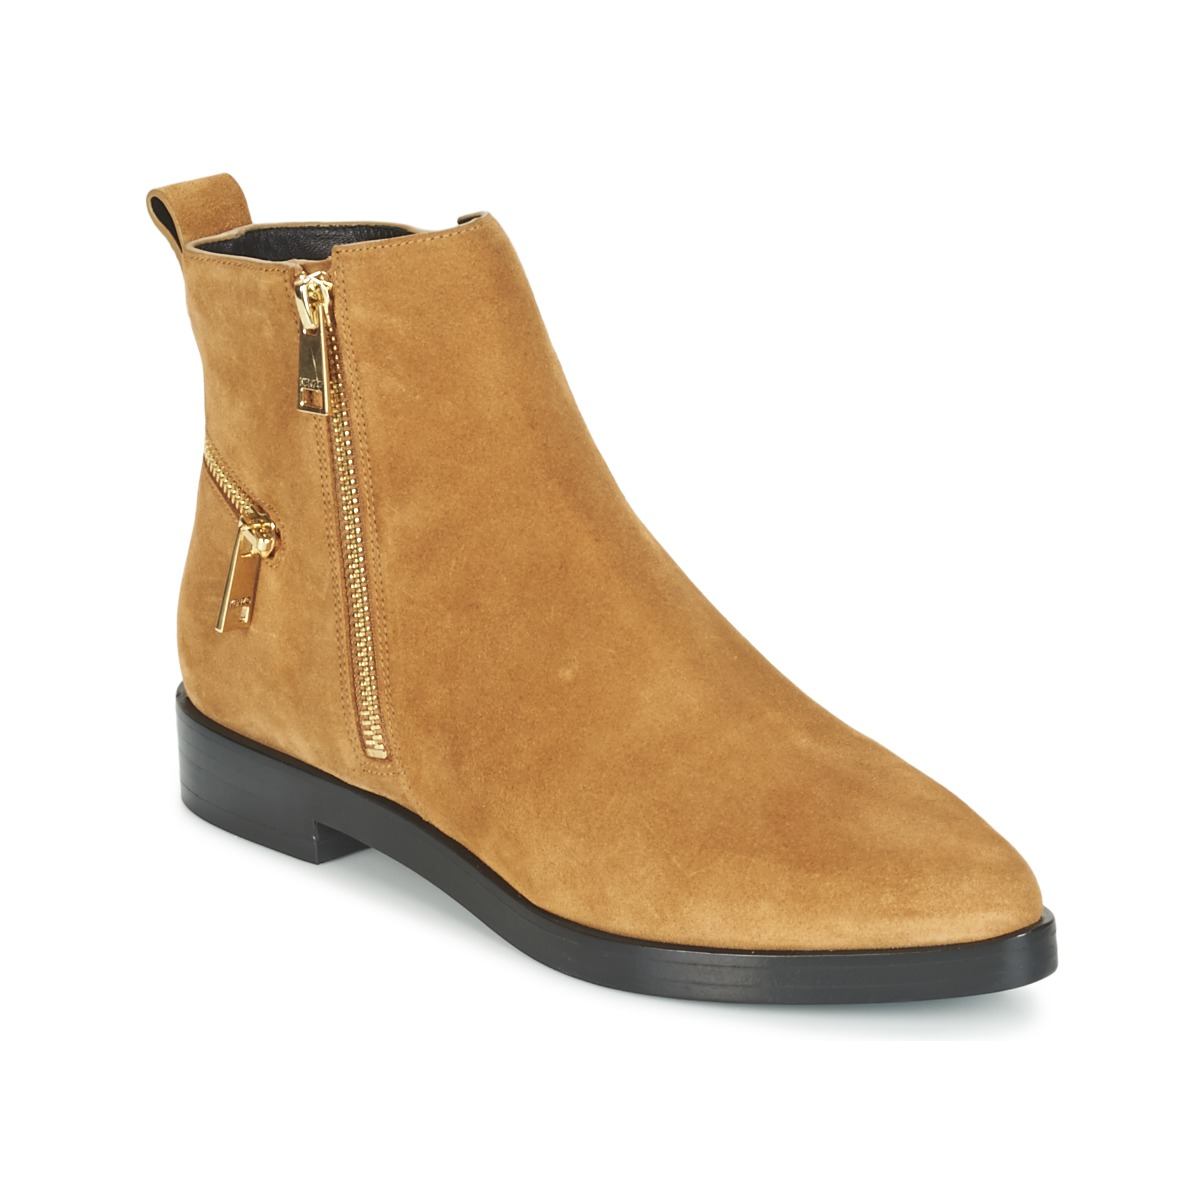 Kenzo TOTEM FLAT BOOTS Camel